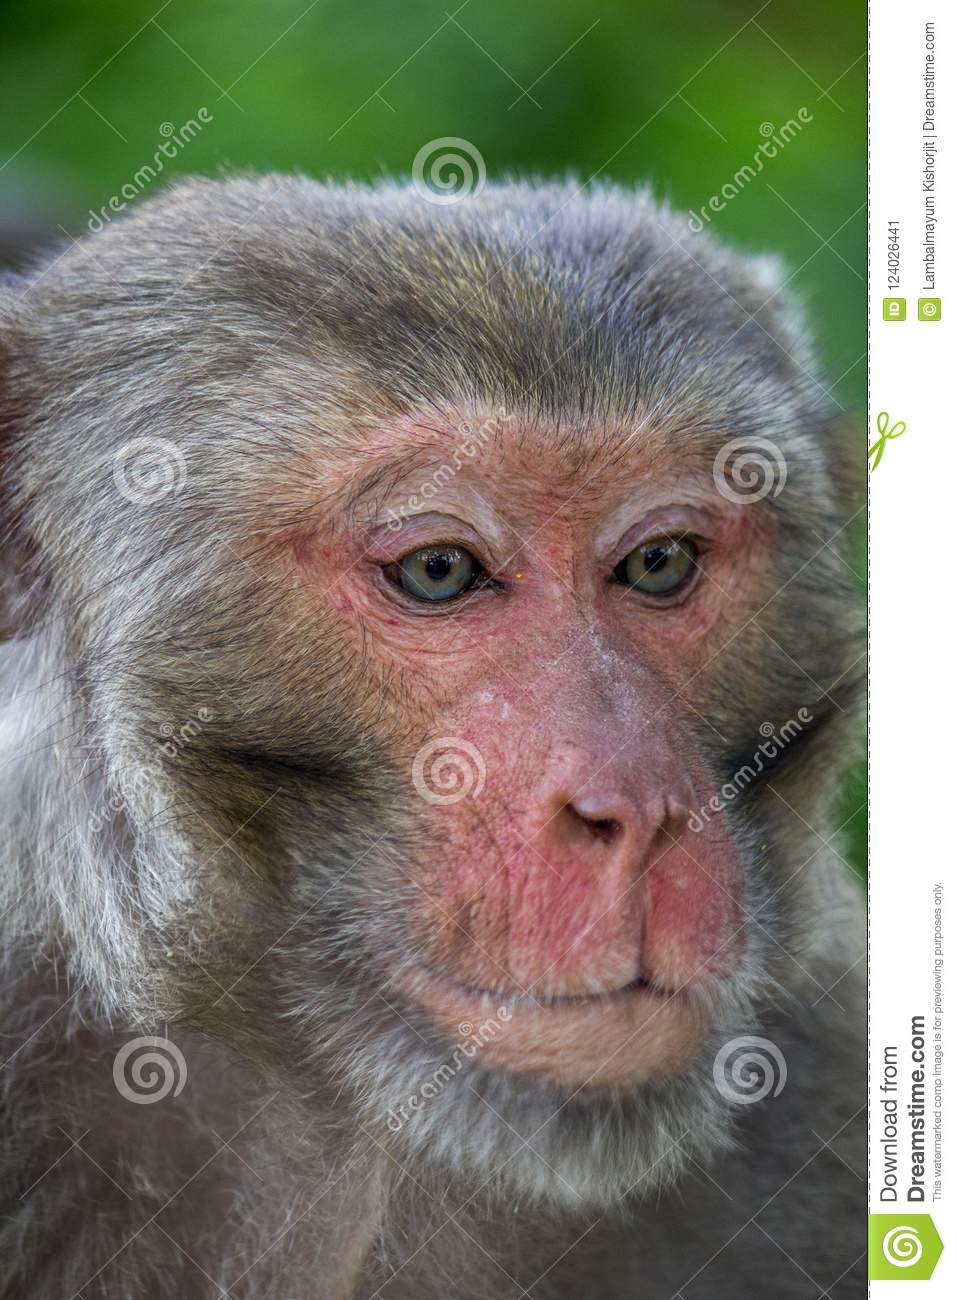 Portrait Of A Monkey With Broken Lip Innocent And Scary Mammals Wildlife Pet Drinking Water